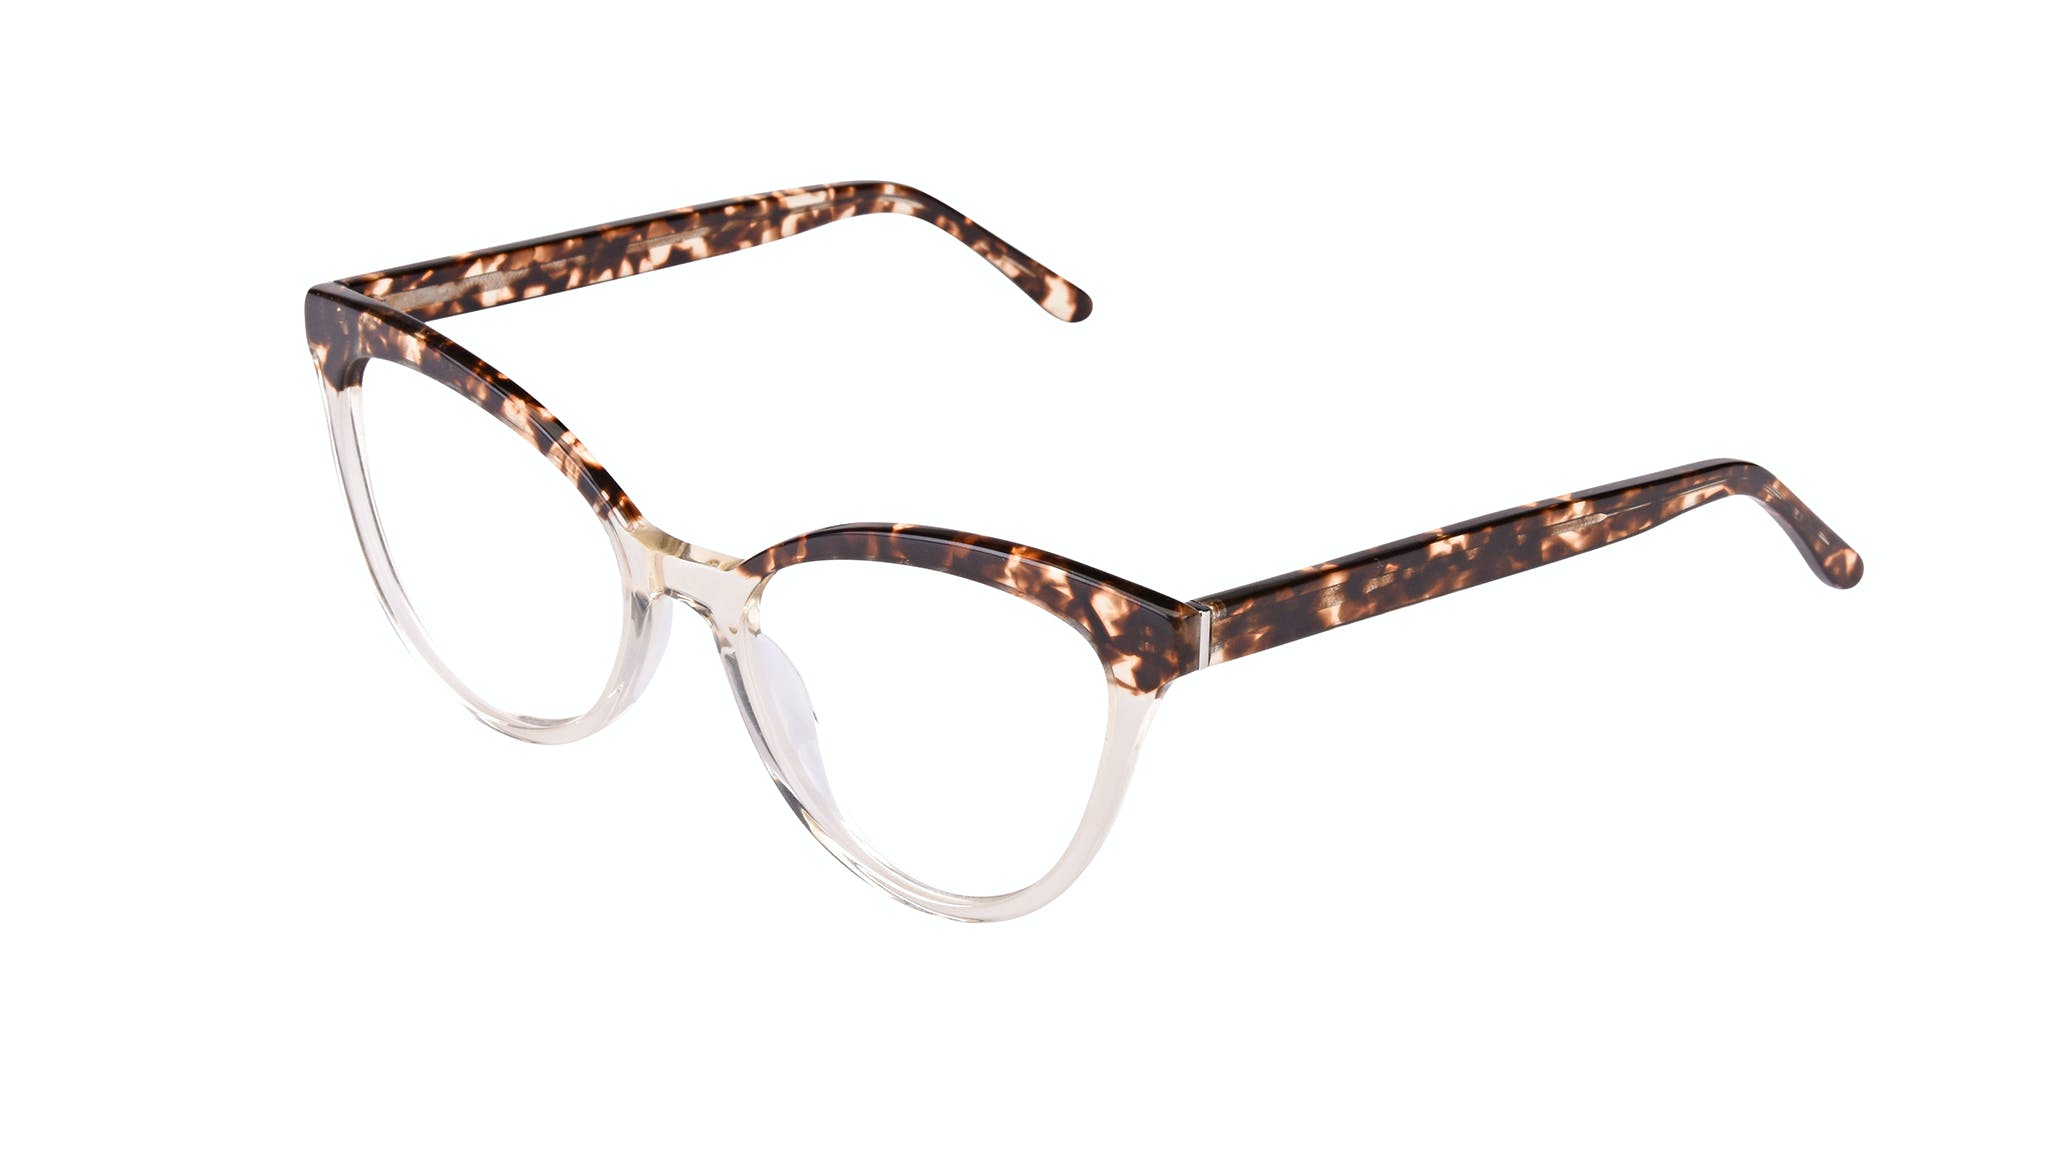 Affordable Fashion Glasses Cat Eye Daring Cateye Eyeglasses Women Reverie Blond Tortoise Tilt